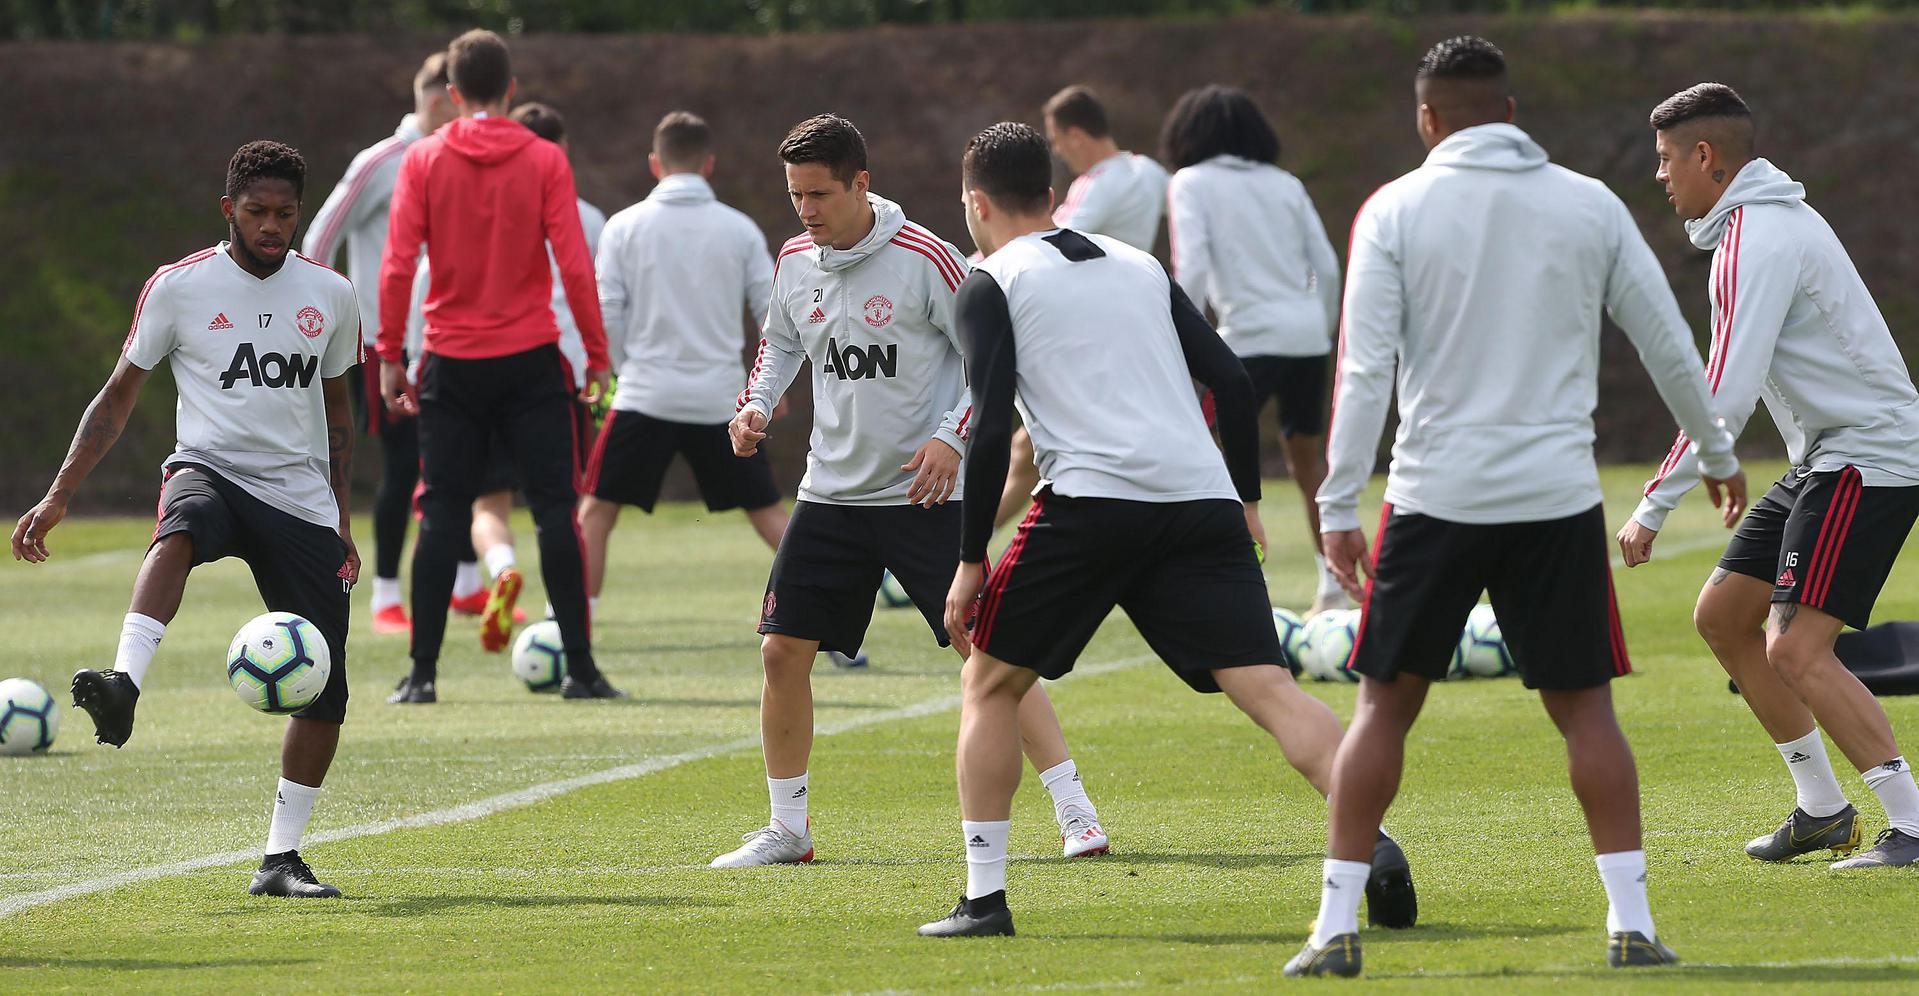 Fred, Ander Herrera and Marcos Rojo take part in a first-team practice session at the Aon Training Complex